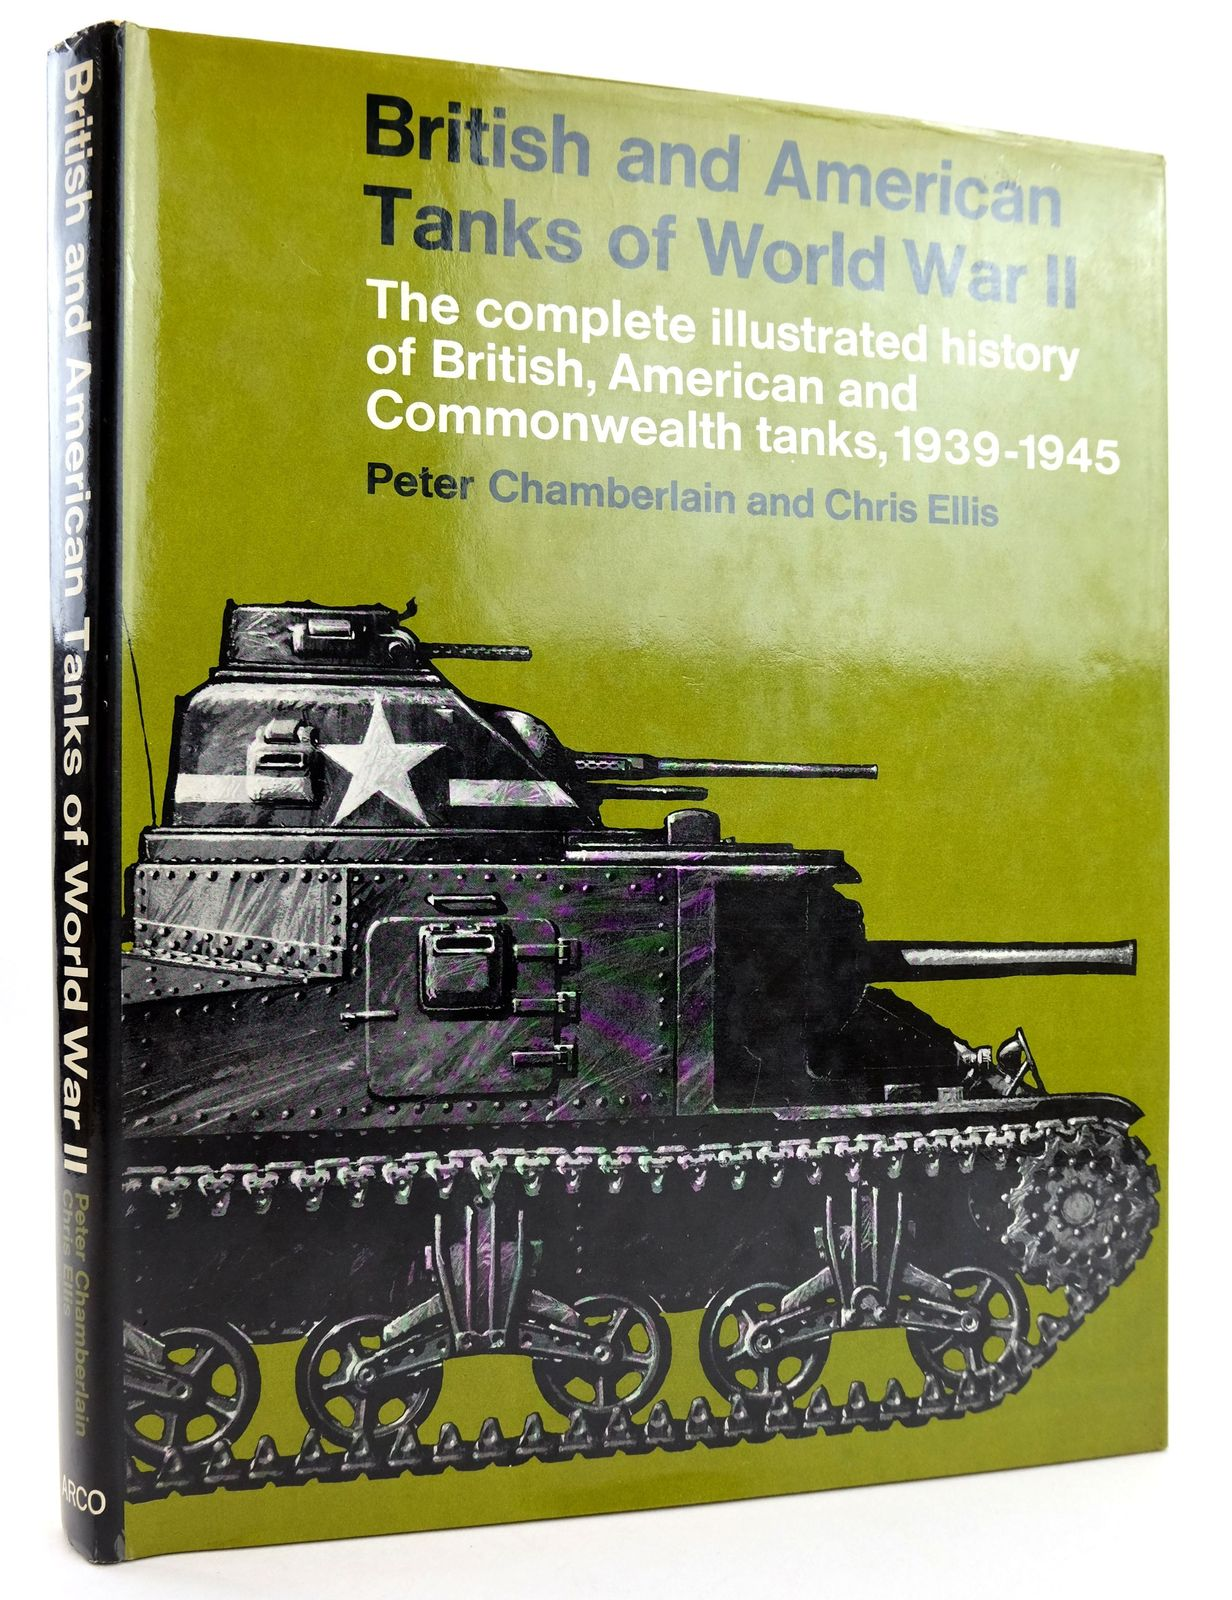 Photo of BRITISH AND AMERICAN TANKS OF WORLD WAR II written by Chamberlain, Peter Ellis, Chris published by Arco Publishing (STOCK CODE: 1819157)  for sale by Stella & Rose's Books